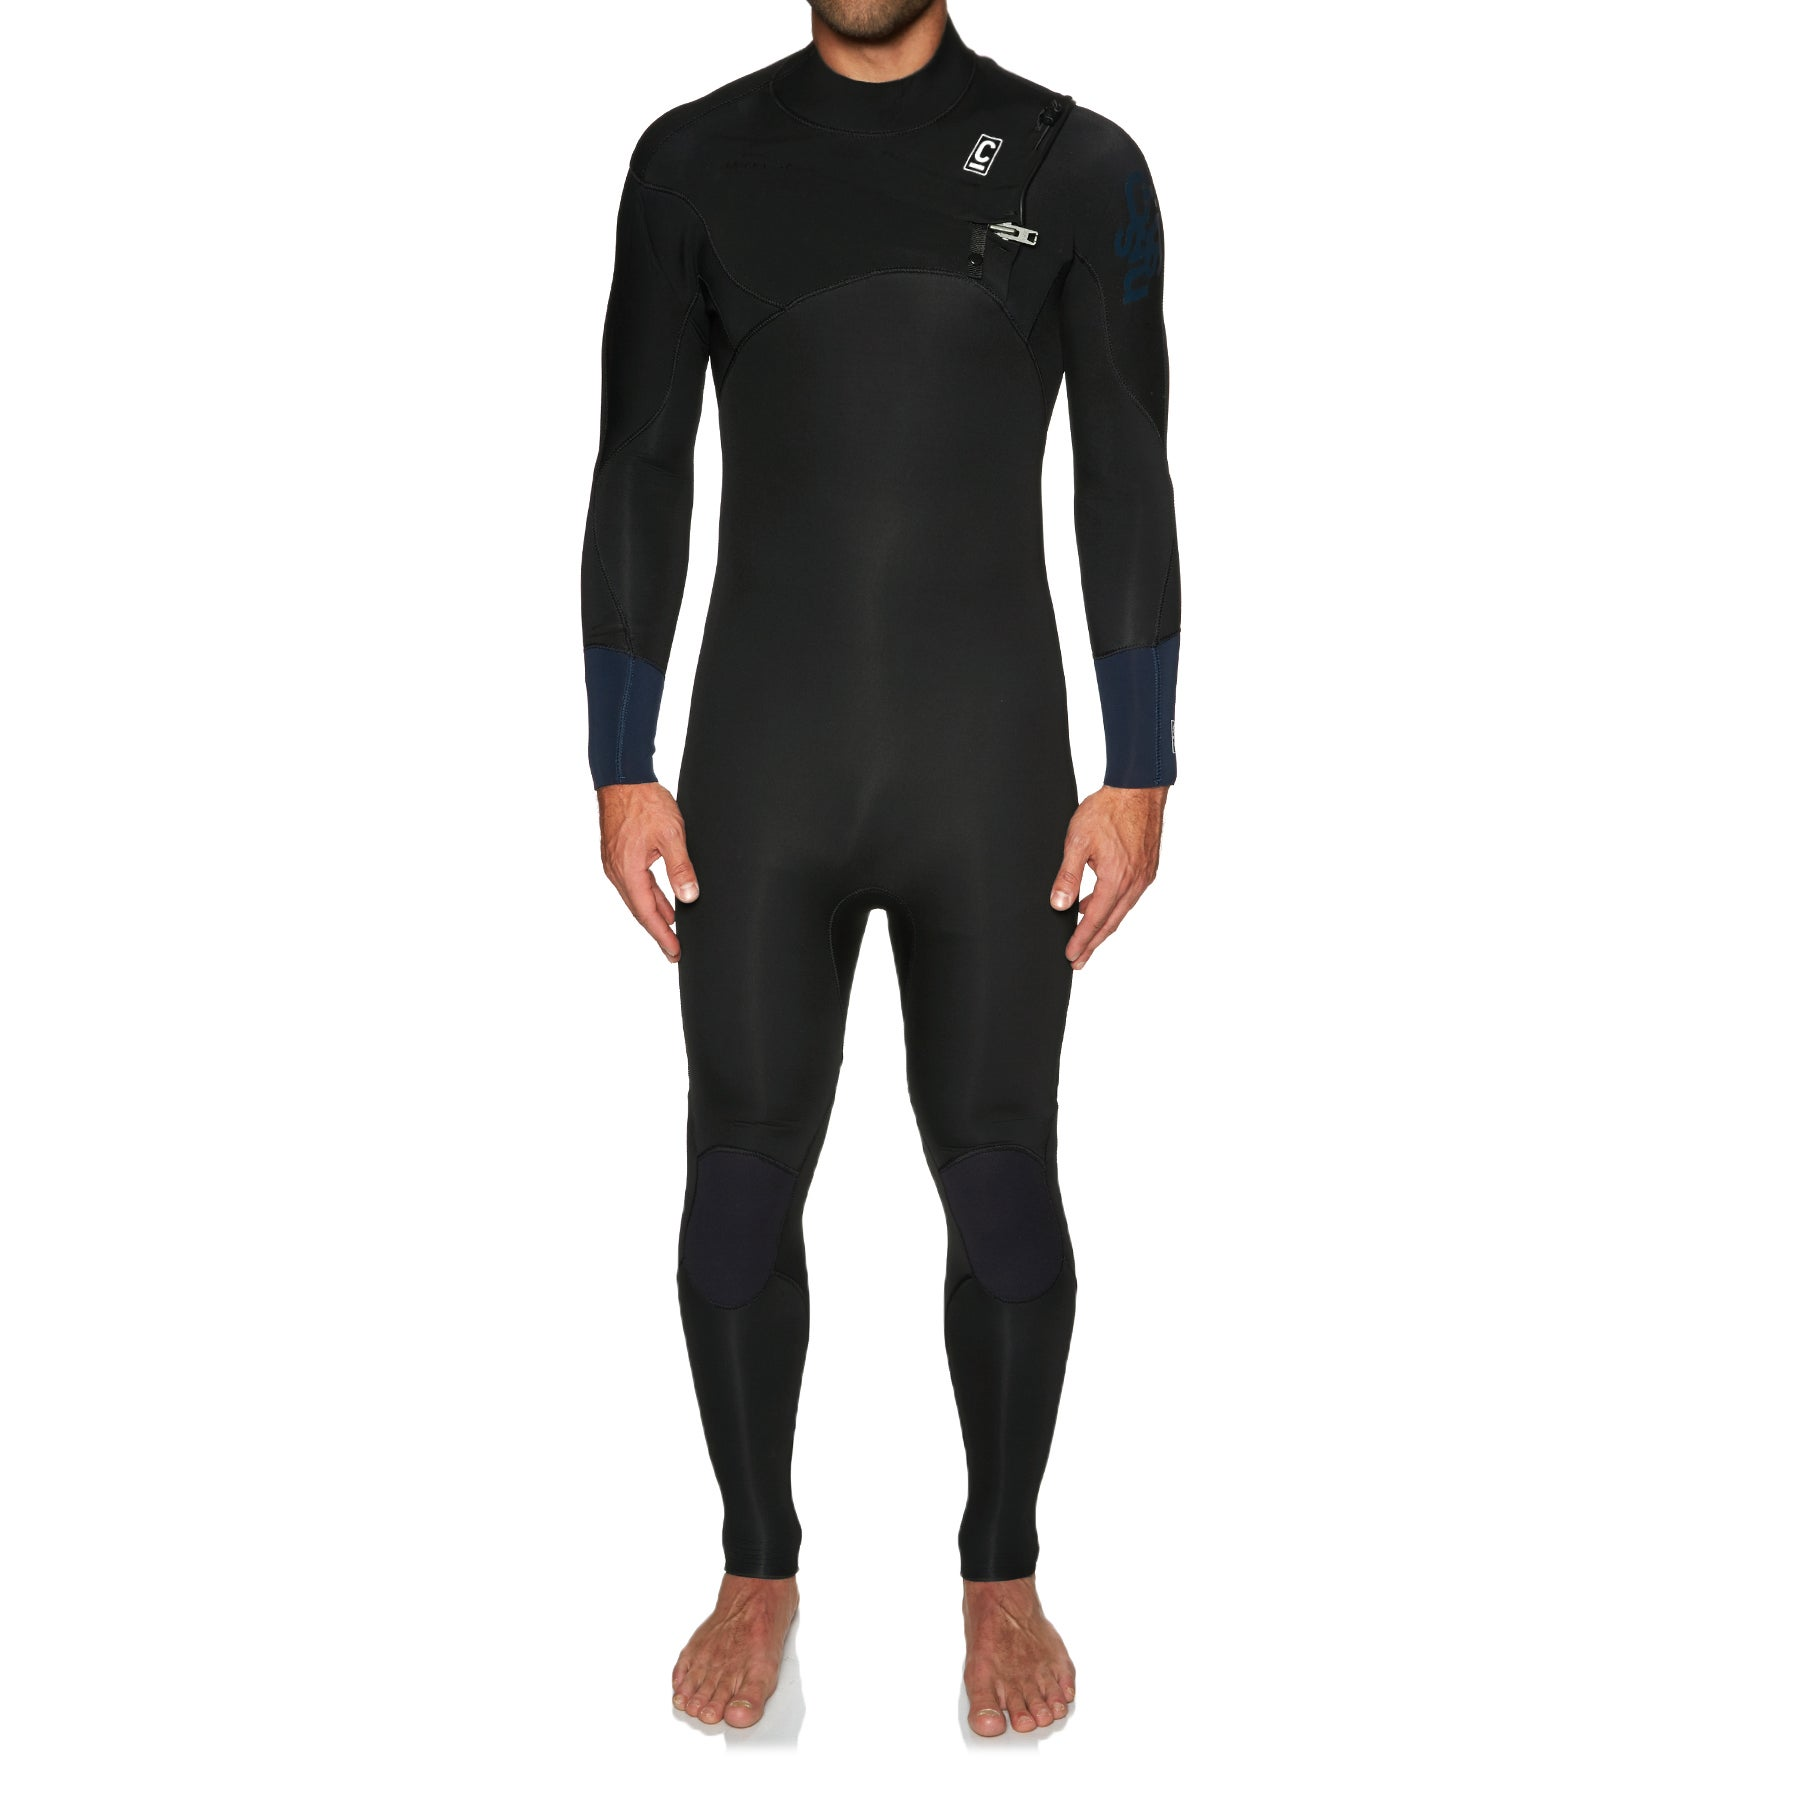 C-Skins Session 5/4/3mm 2019 Chest Zip Wetsuit